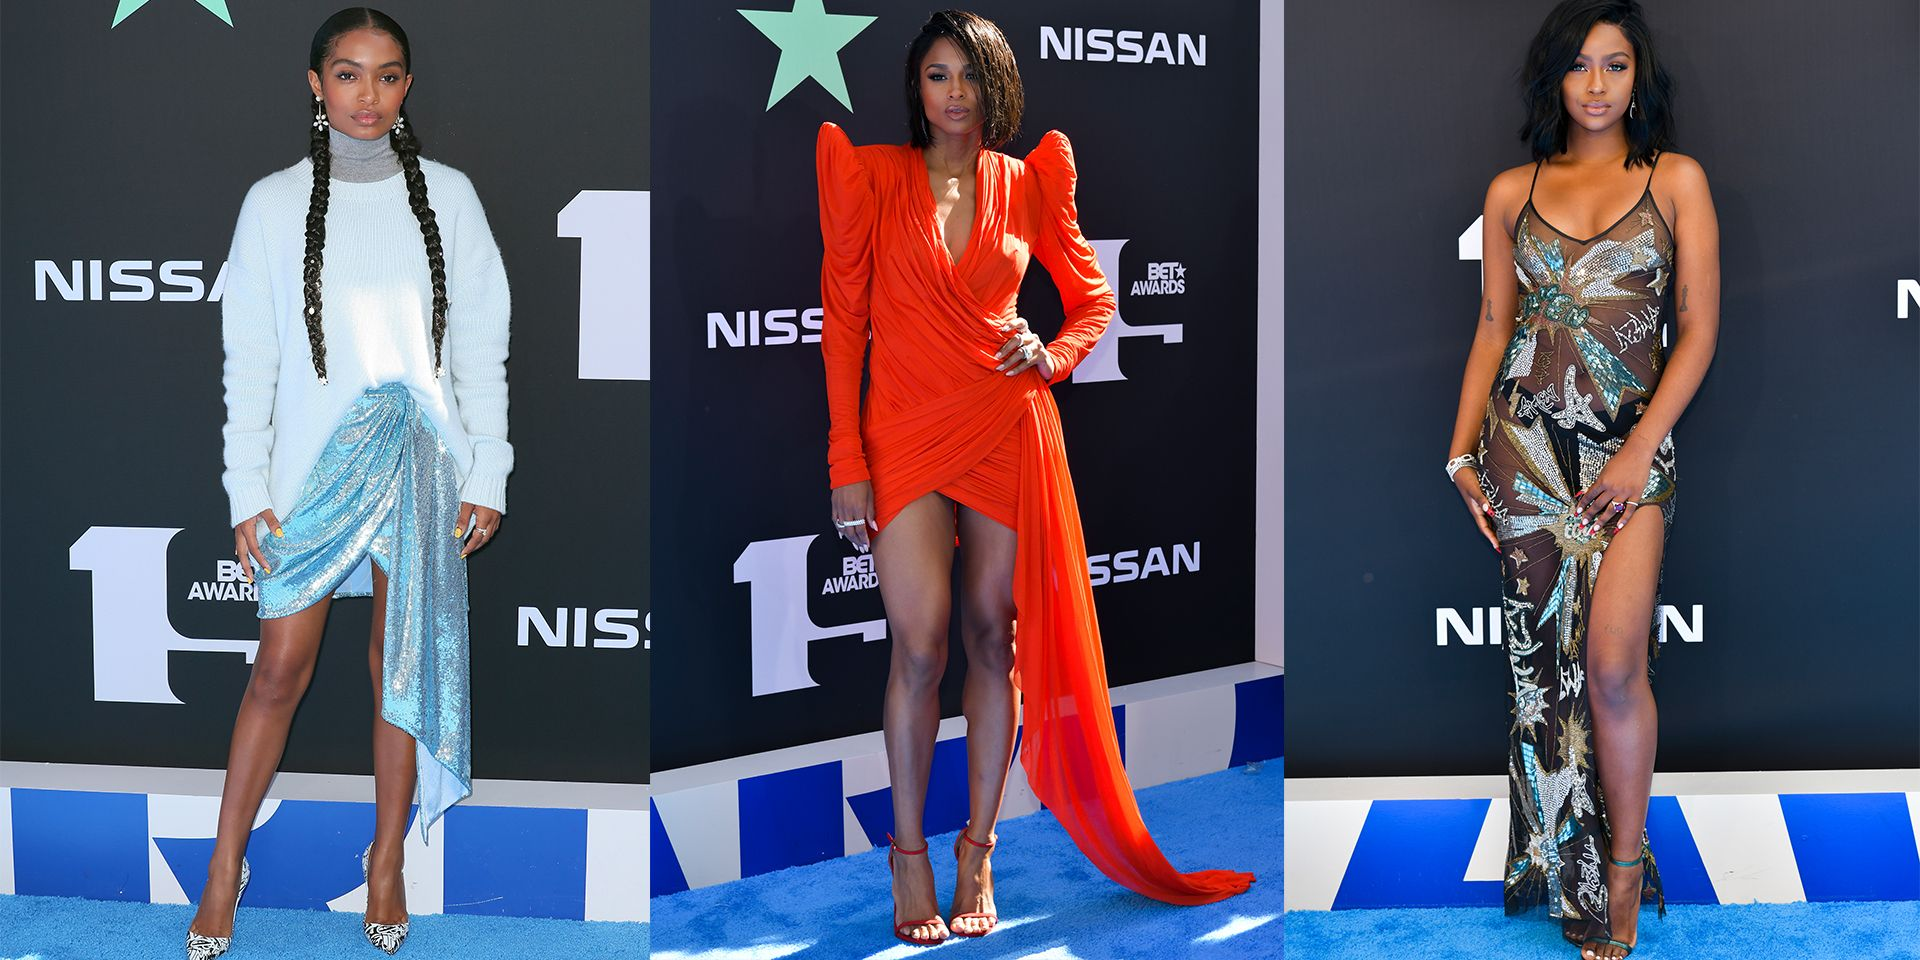 The 10 Best Dressed Celebrities at the 2019 BET Awards